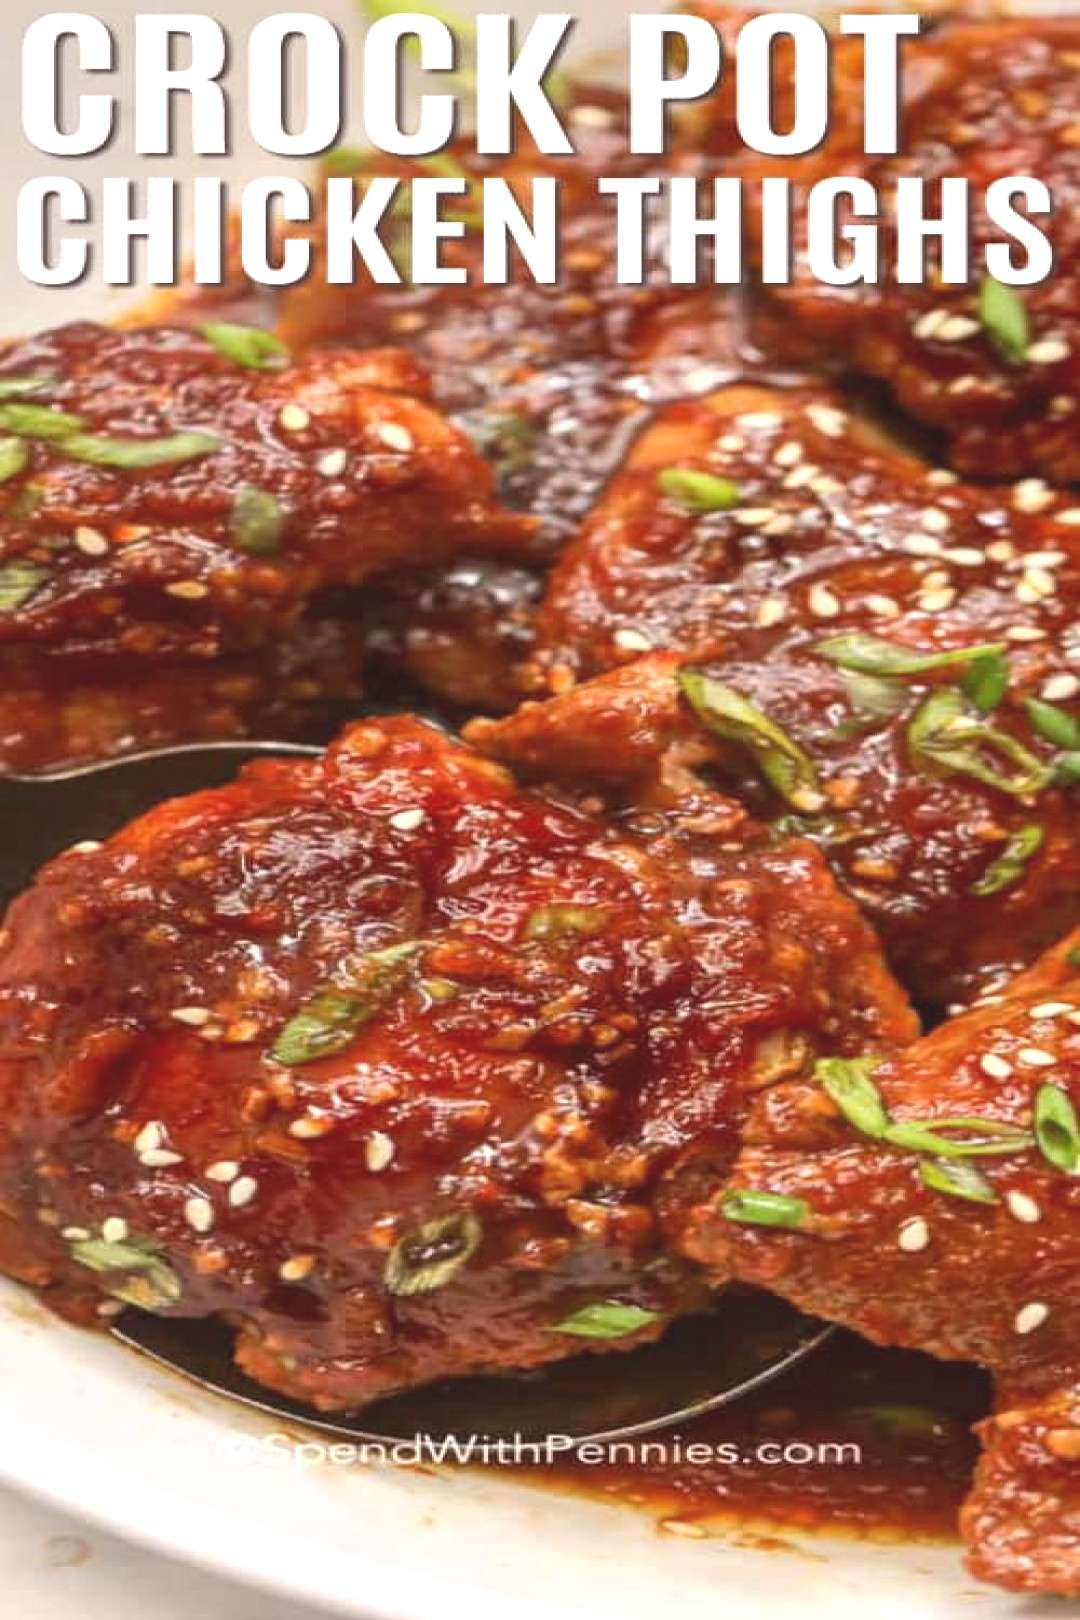 Crock Pot Chicken Thighs Sweet & Spicy Sauce - Spend With Pennies